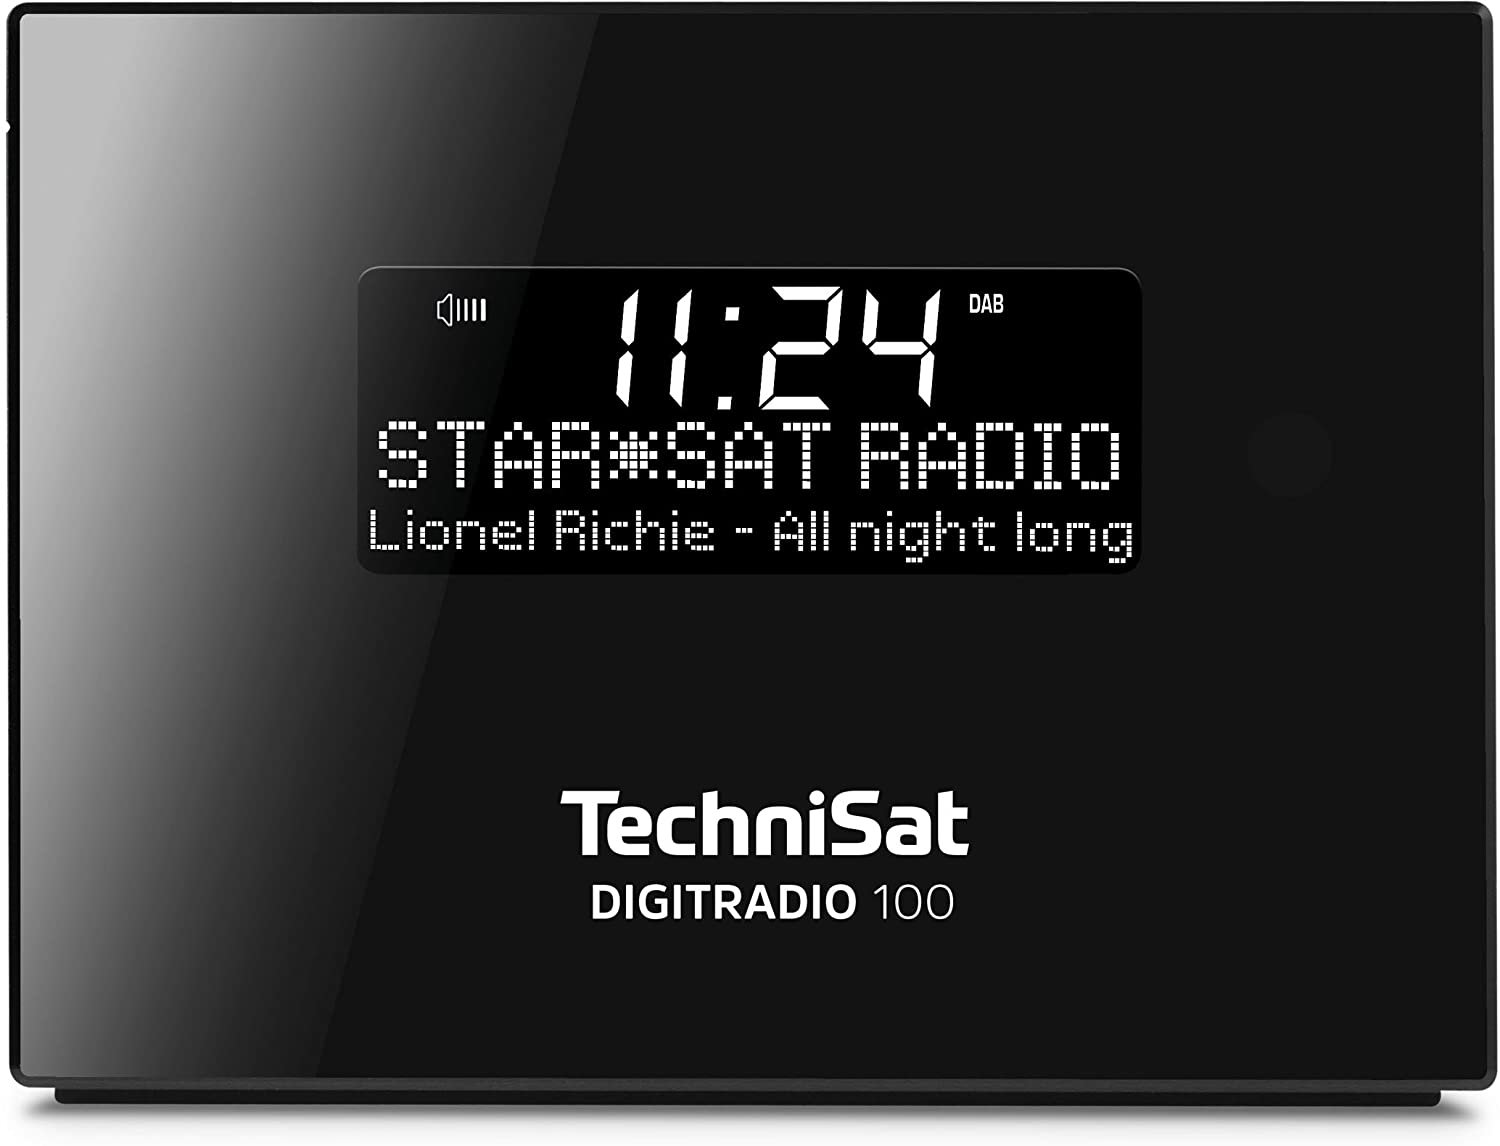 technisat digitradio 100 test radio. Black Bedroom Furniture Sets. Home Design Ideas